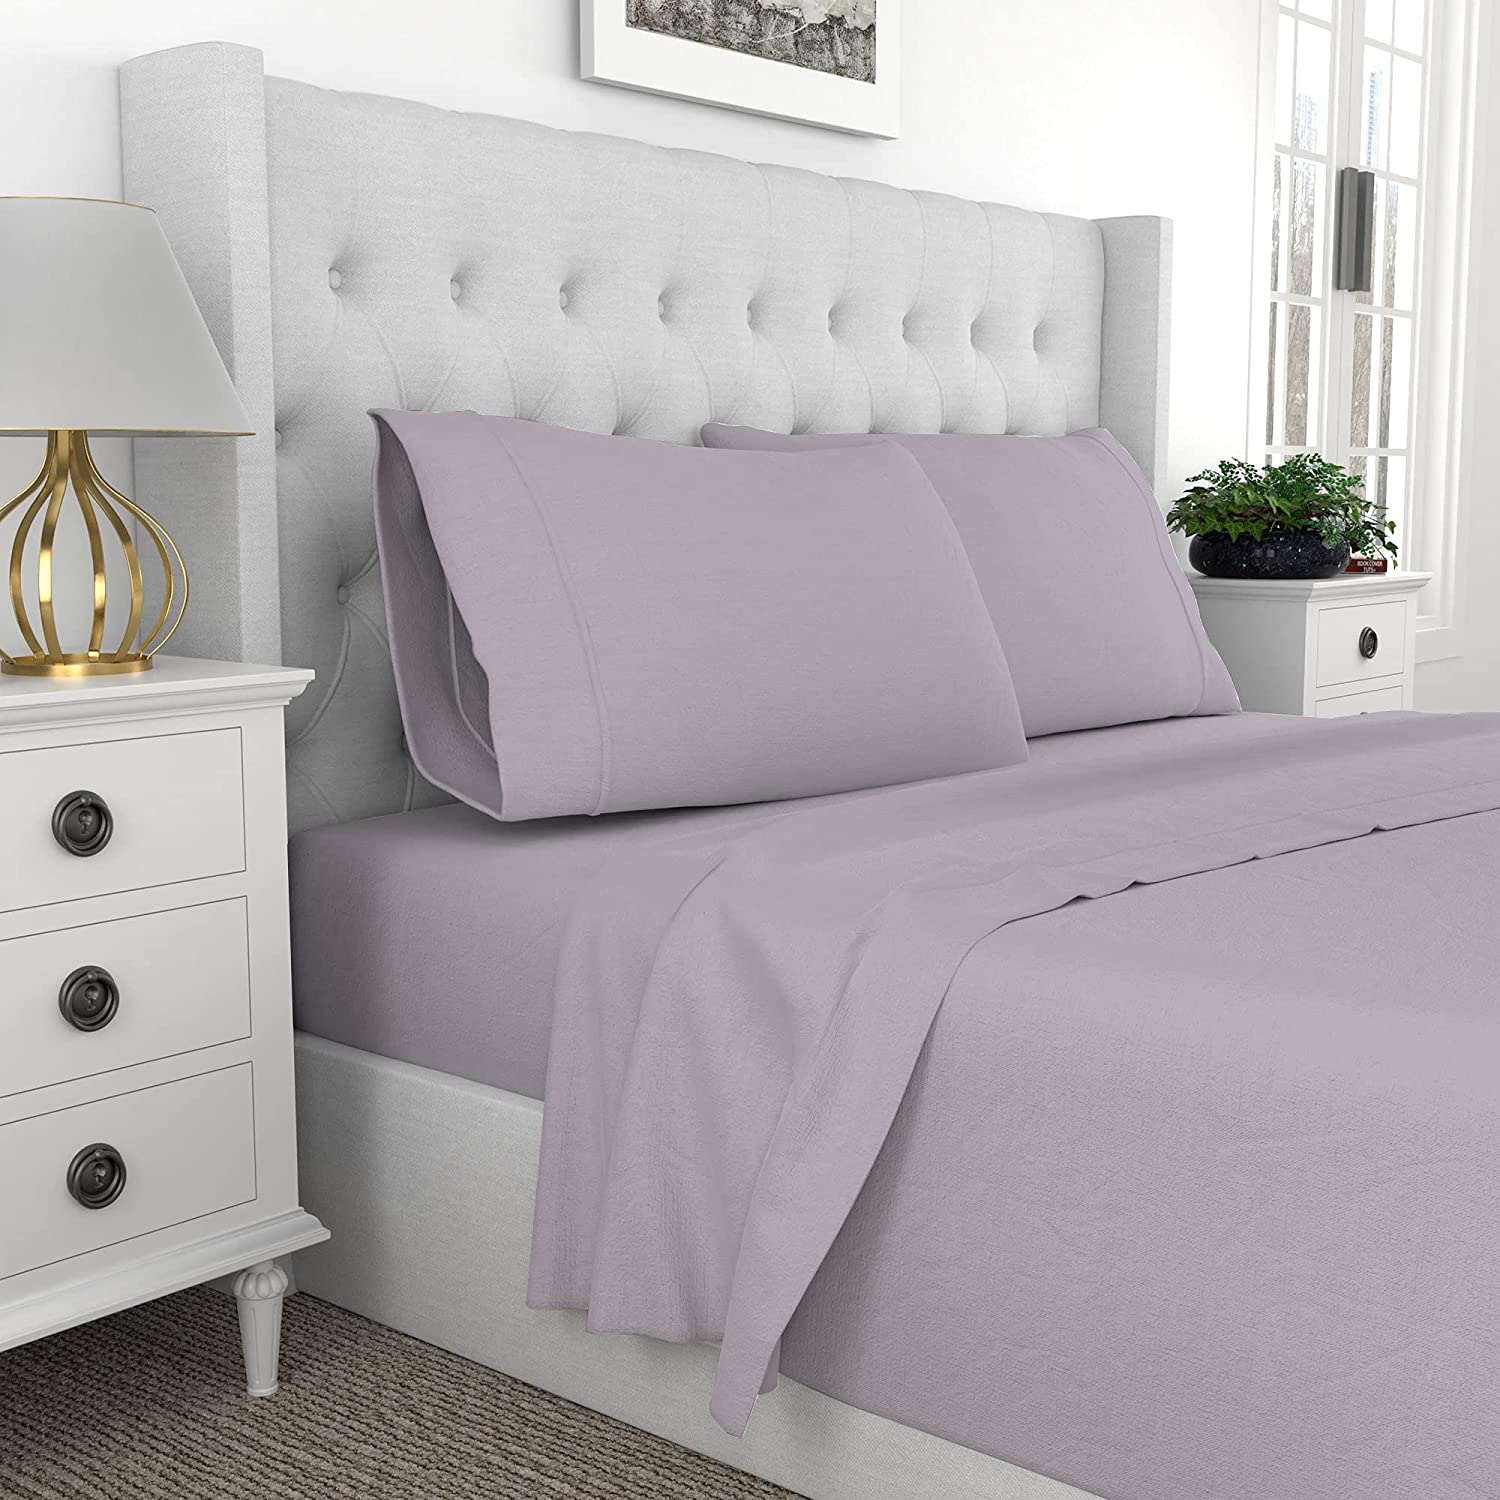 Purity Home 300 Thread Count 100% Organic Cotton Percale Weave 4 Piece Sheets Set, Brushed For Softness, Cool Crisp,GOTS Certified,Fitted Sheet Fits Mattress Upto 18